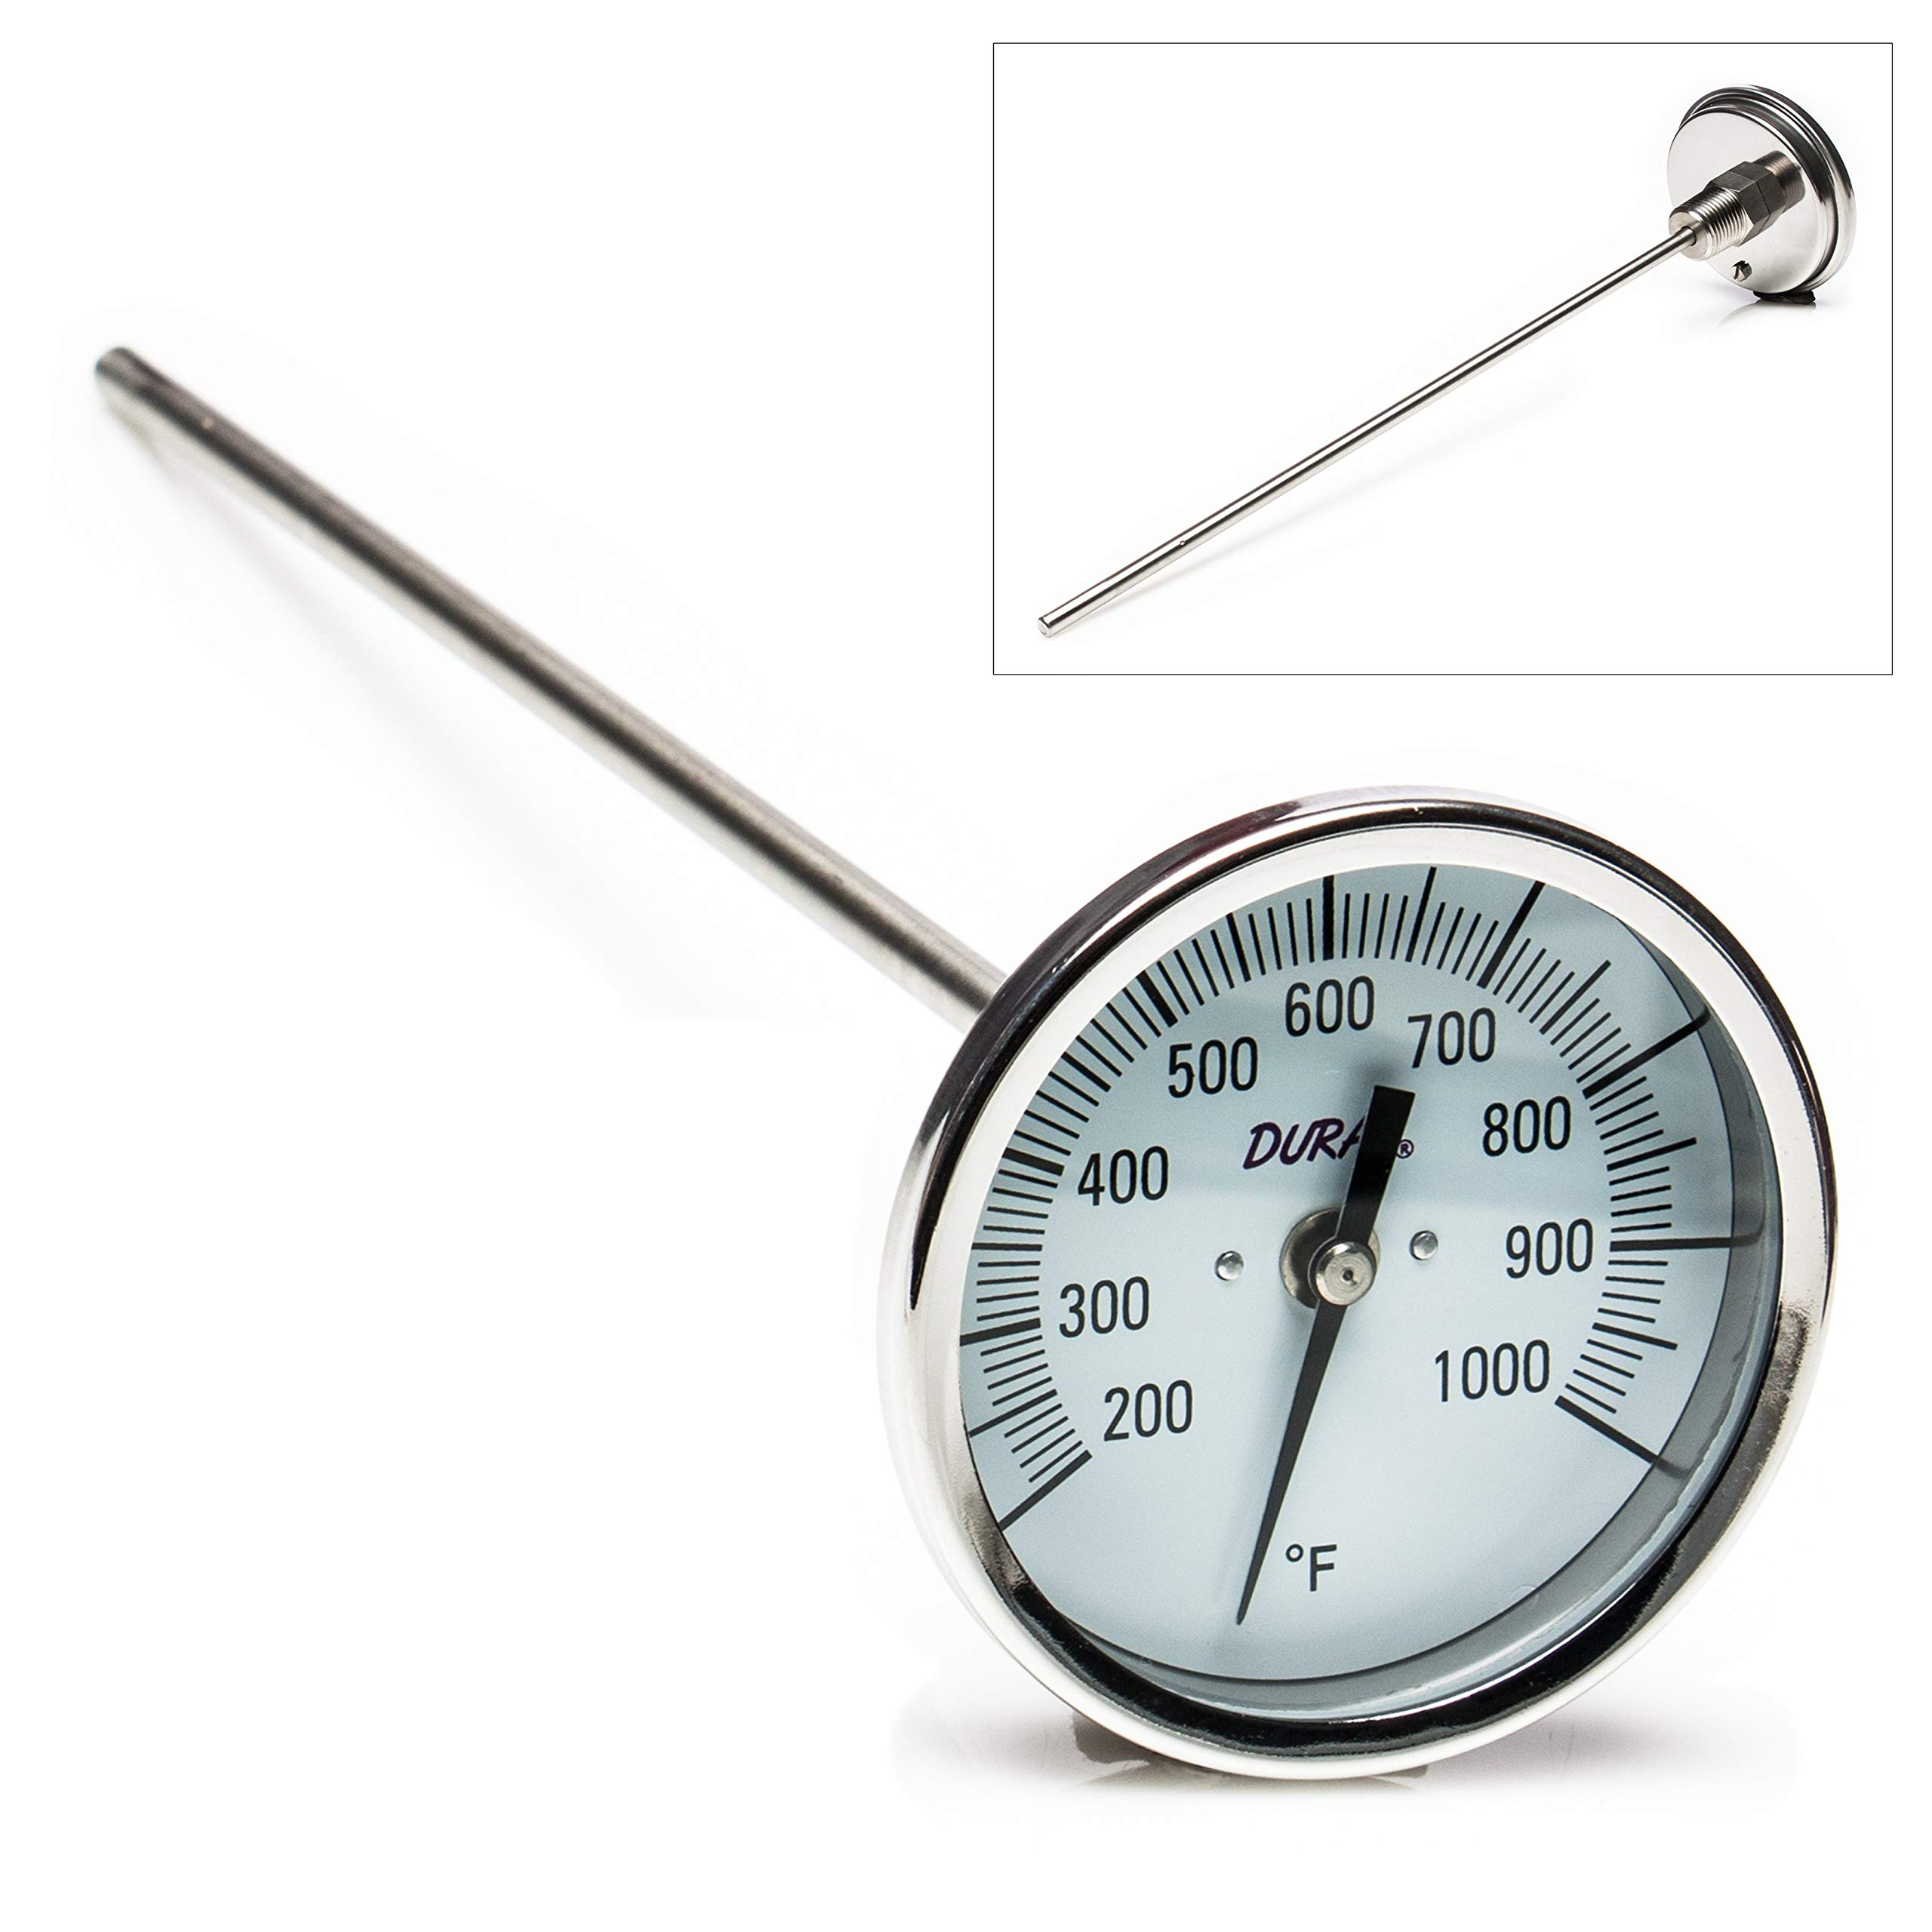 H-B DURAC Bi-Metallic Dial Thermometer; 200 to 1000F, 1/2 in. NPT Threaded Connection, 75mm Dial (B61310-8800)